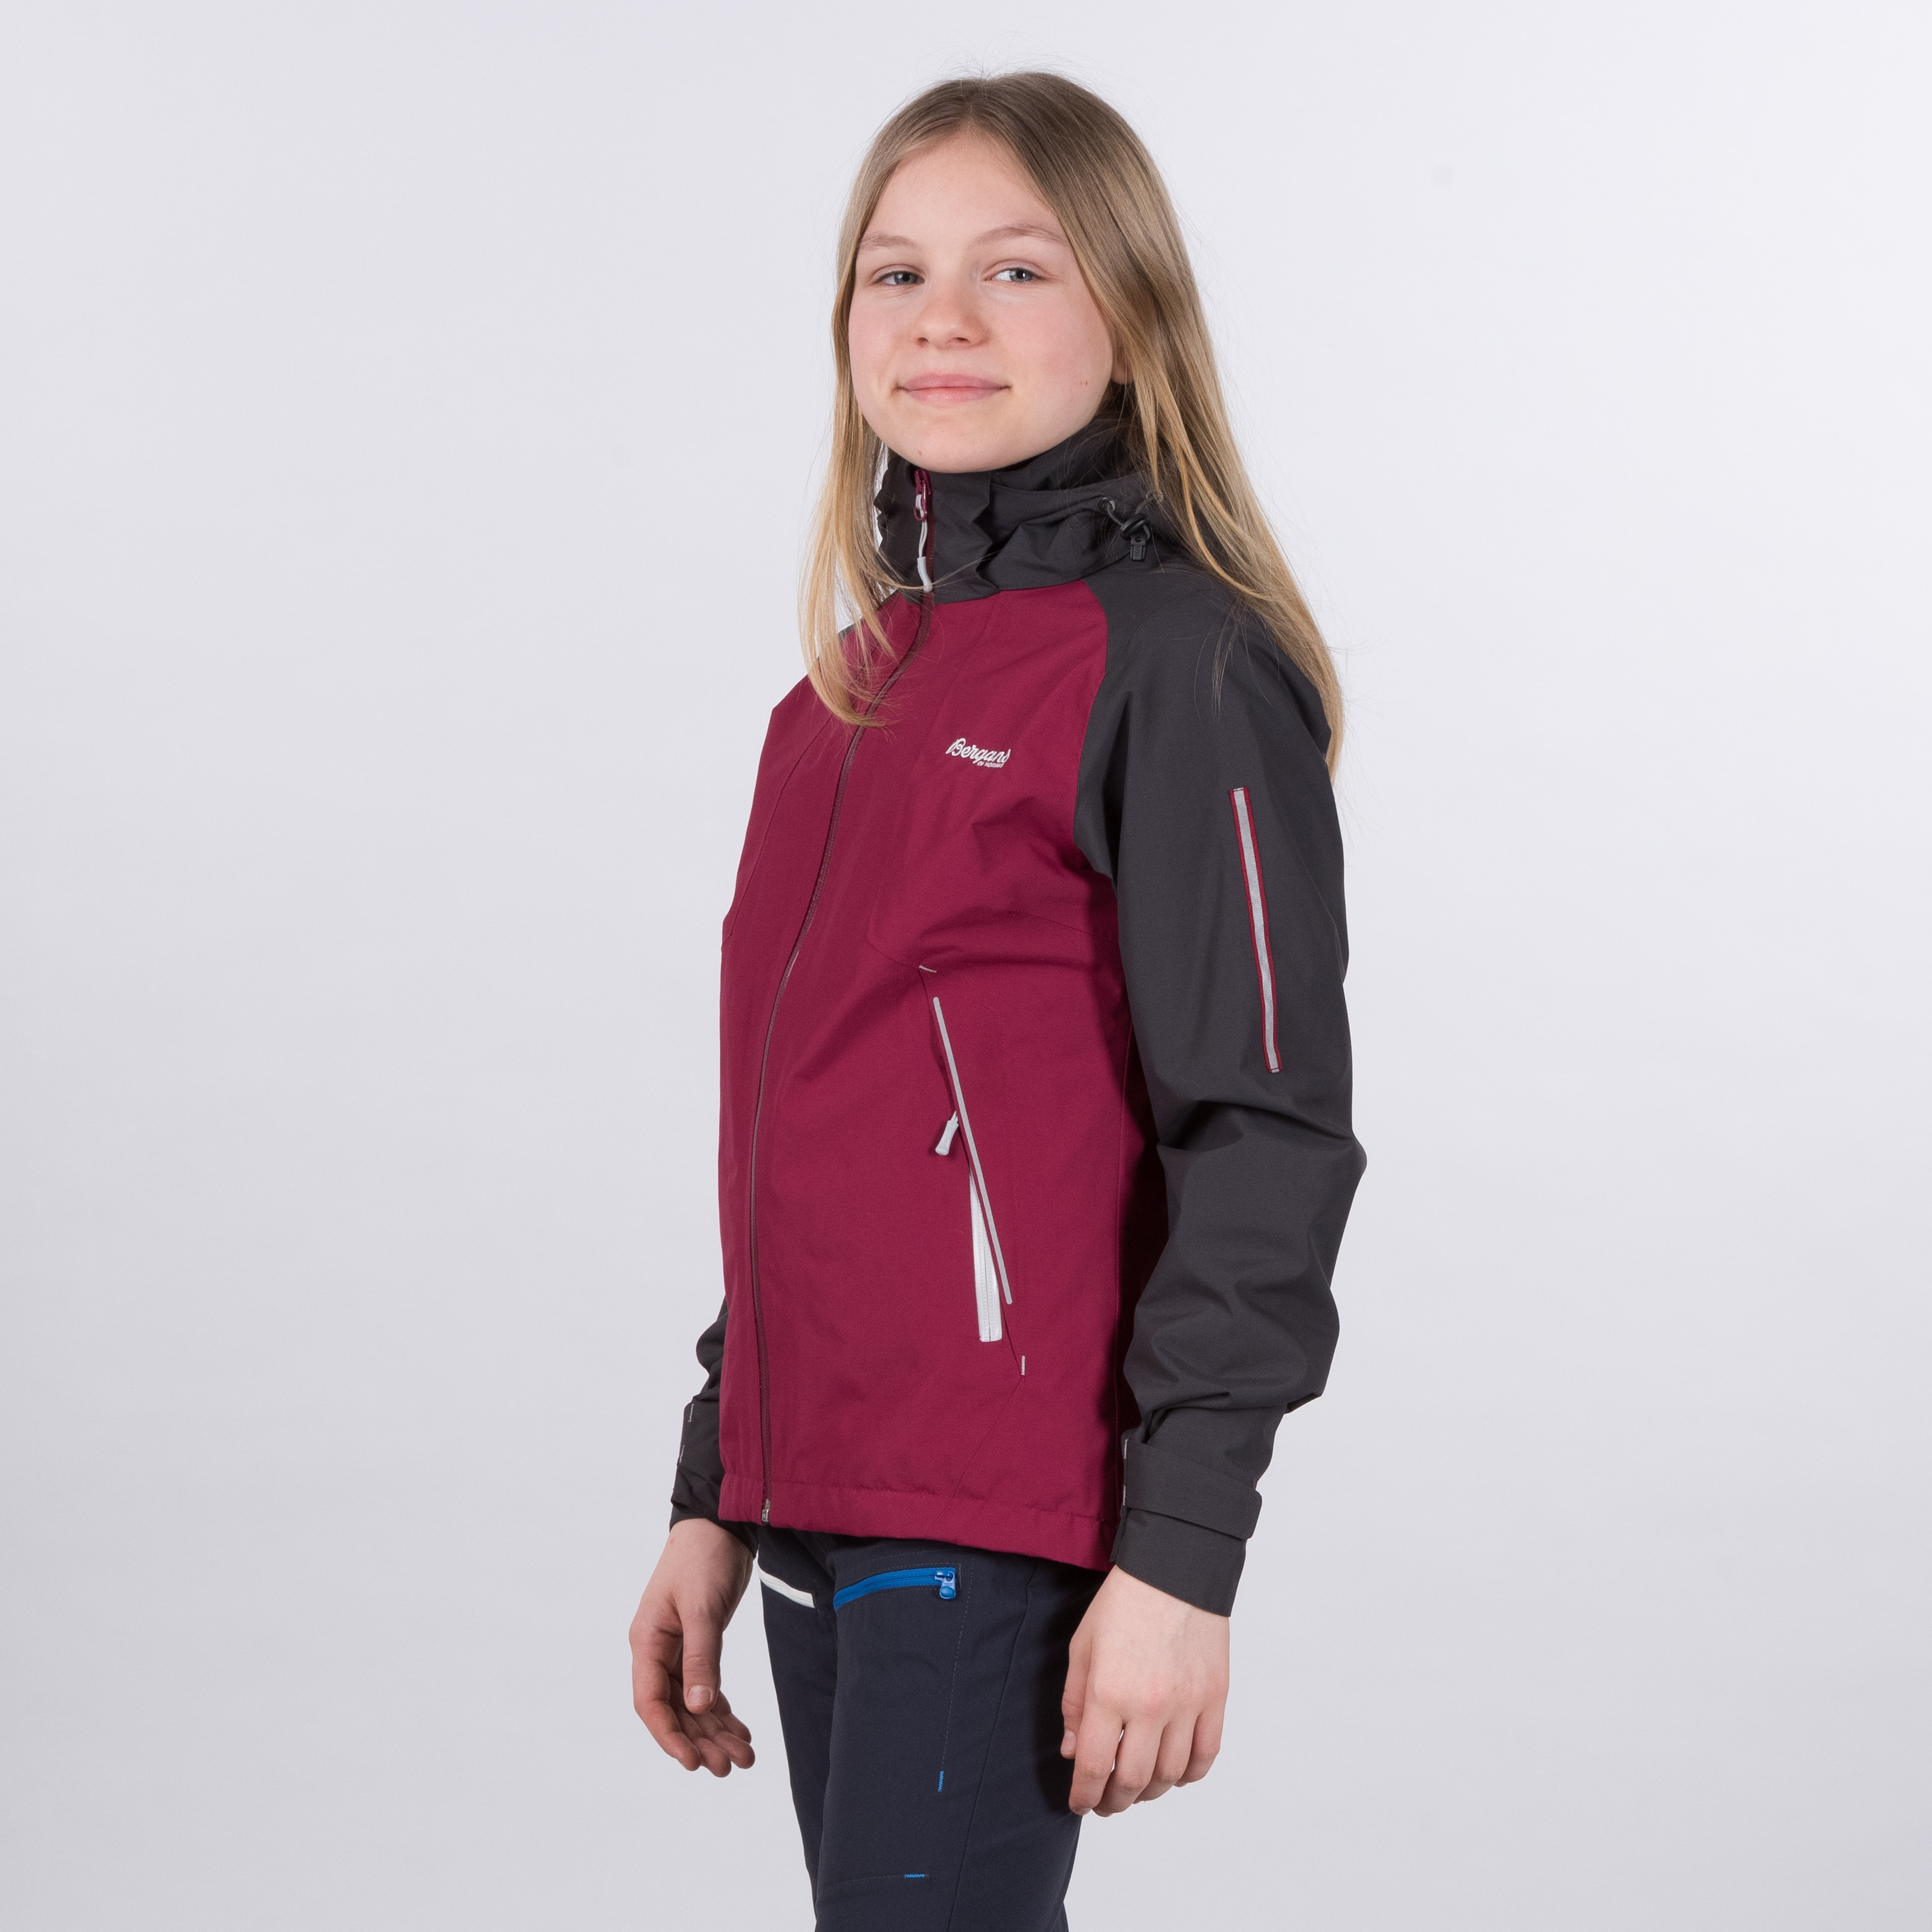 Sjoa 2L Youth Girl Jacket